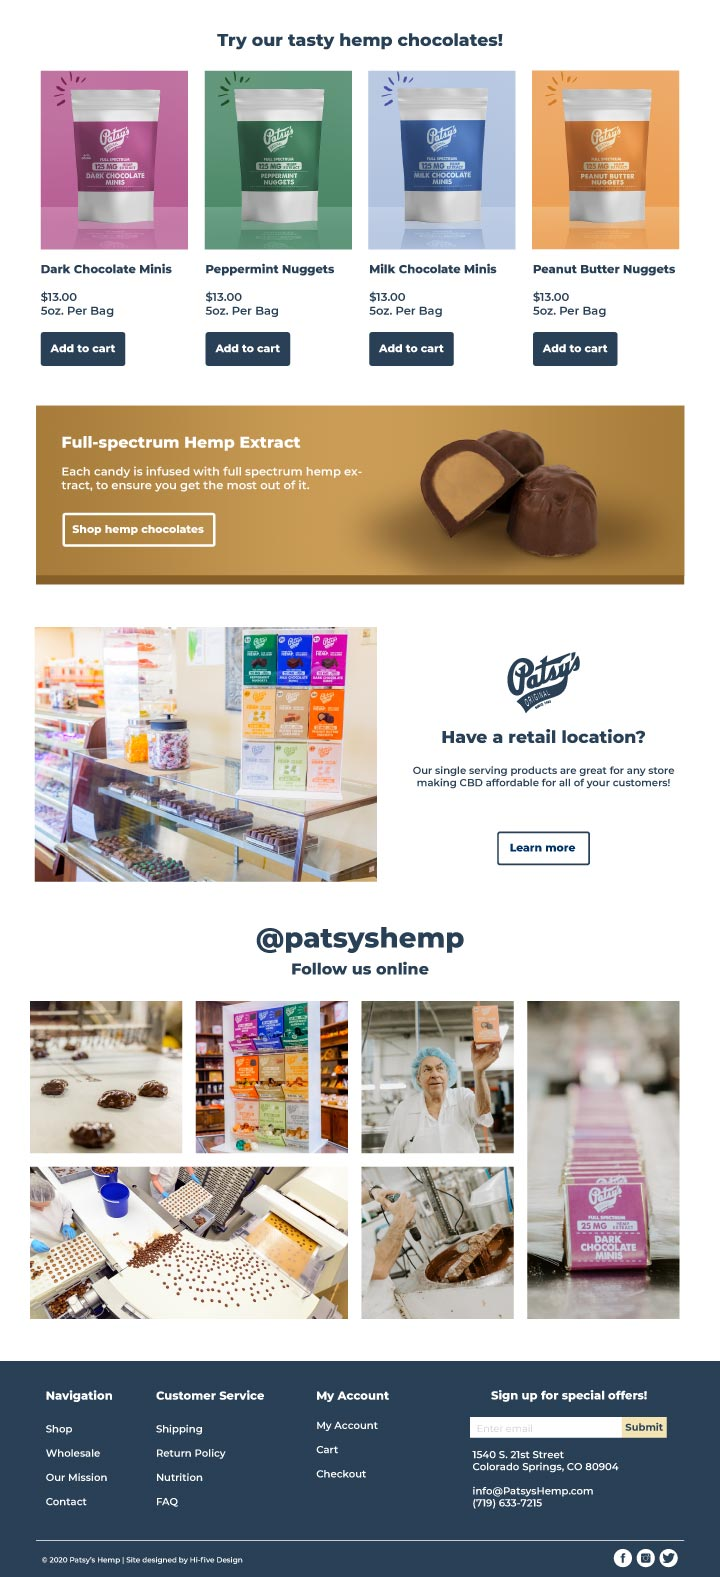 candy website, candy store website design, chocolate bar website design, bakery website design, hi-five design, website designer colorado springs, best web designer colorado springs, web developer colorado springs